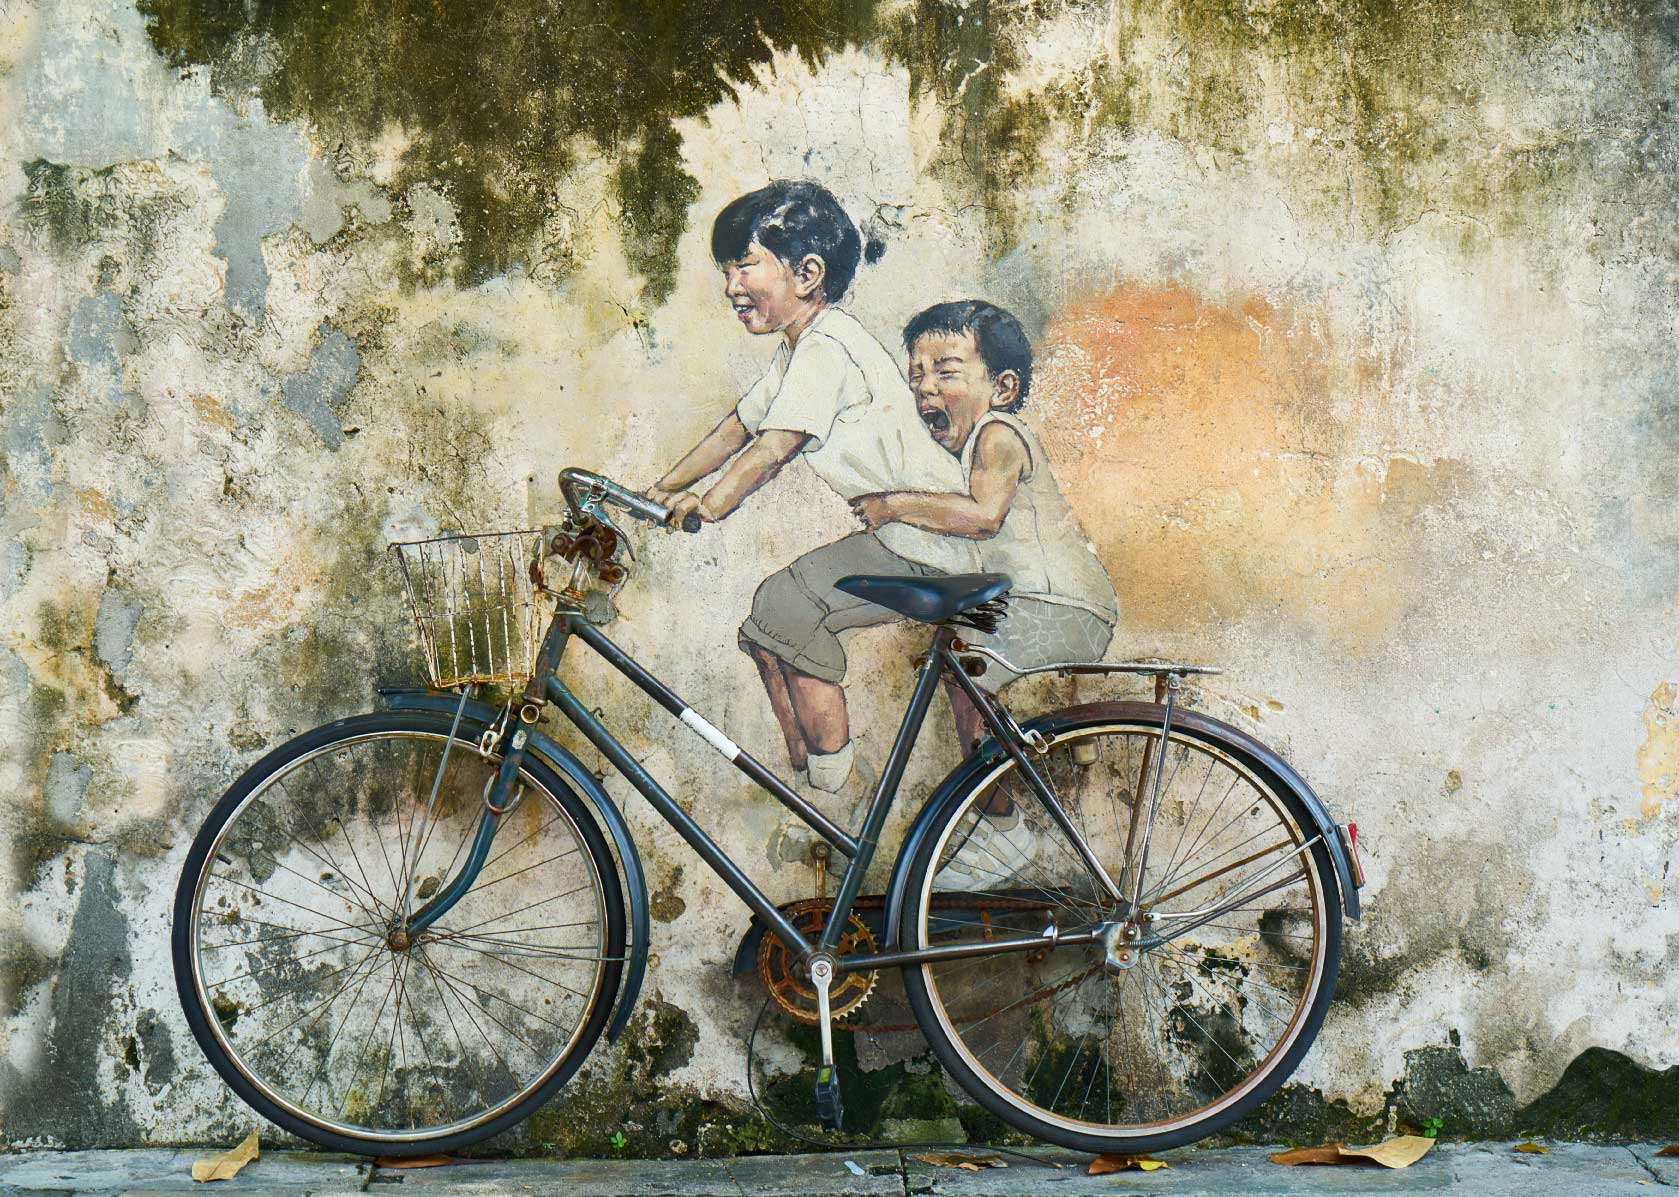 graffiti-children-bicycle